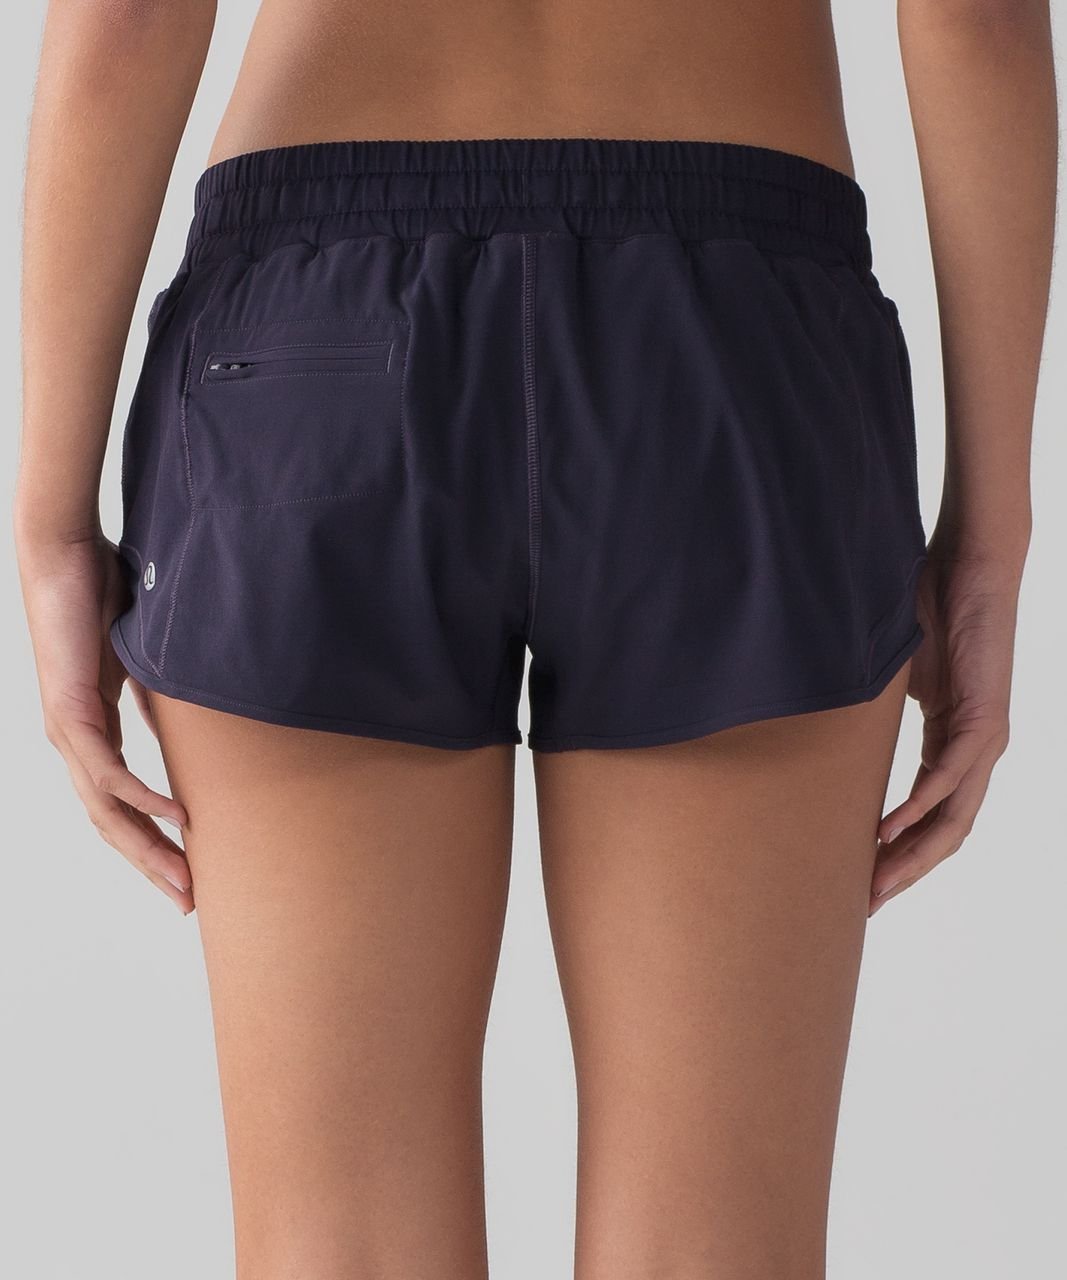 "Lululemon Hotty Hot Short (2.5"") - Black Grape"